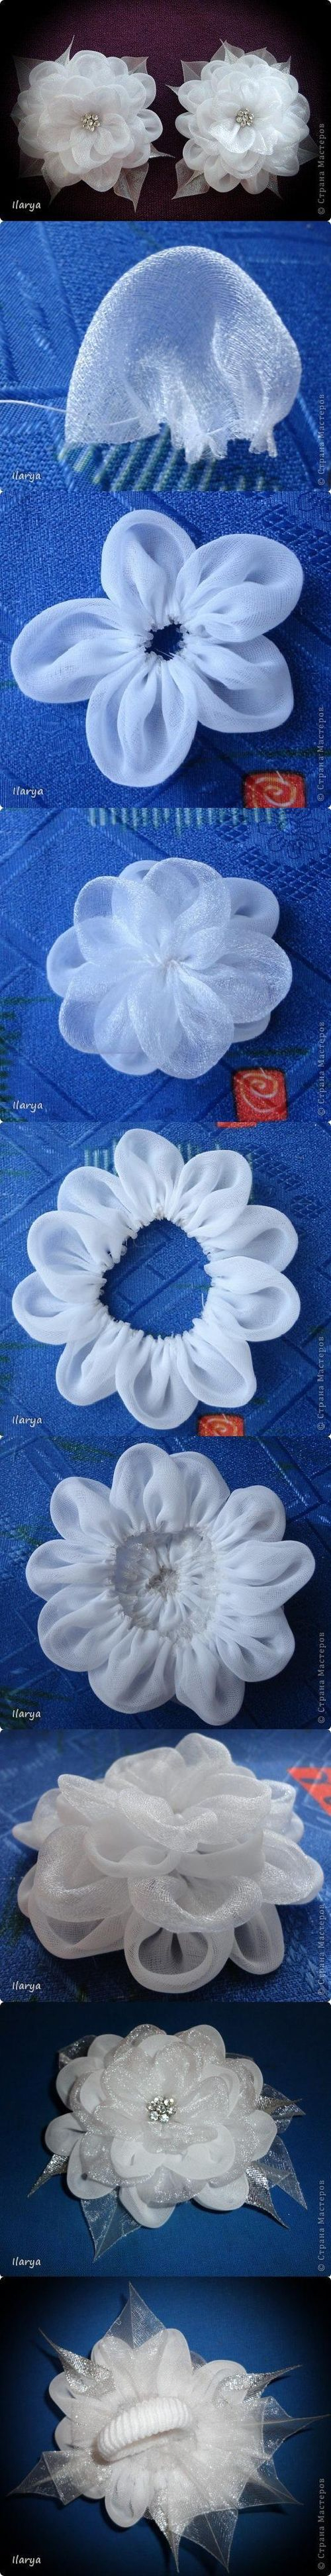 Fabric Flower DIY